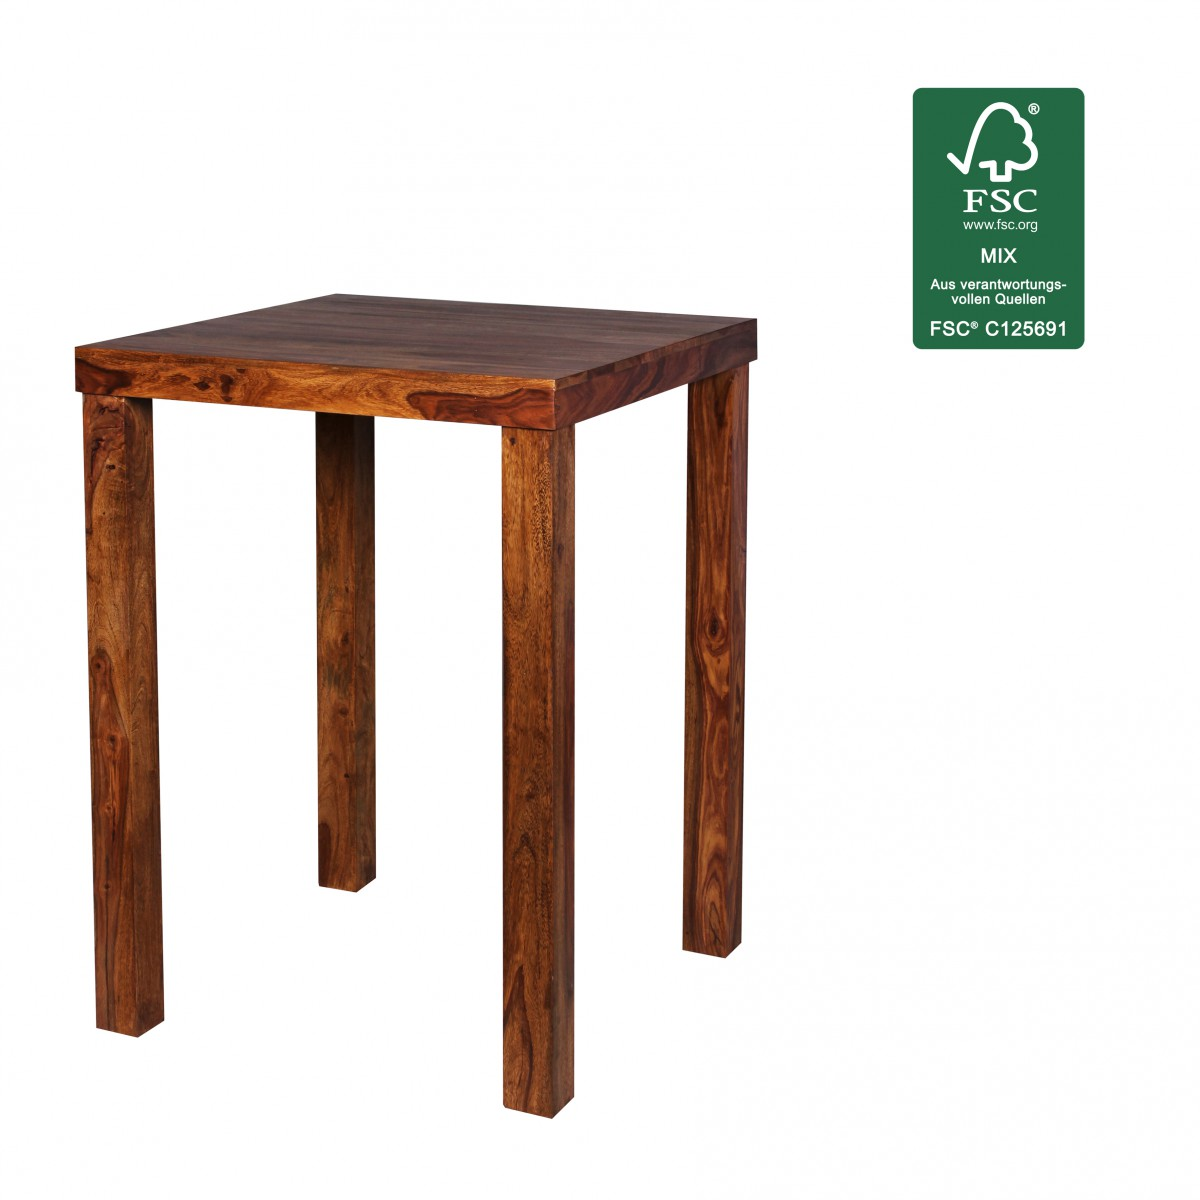 Wohnling sheesham bois massif bar tableau table 80 x 80 cm for Table salle a manger 80 cm largeur